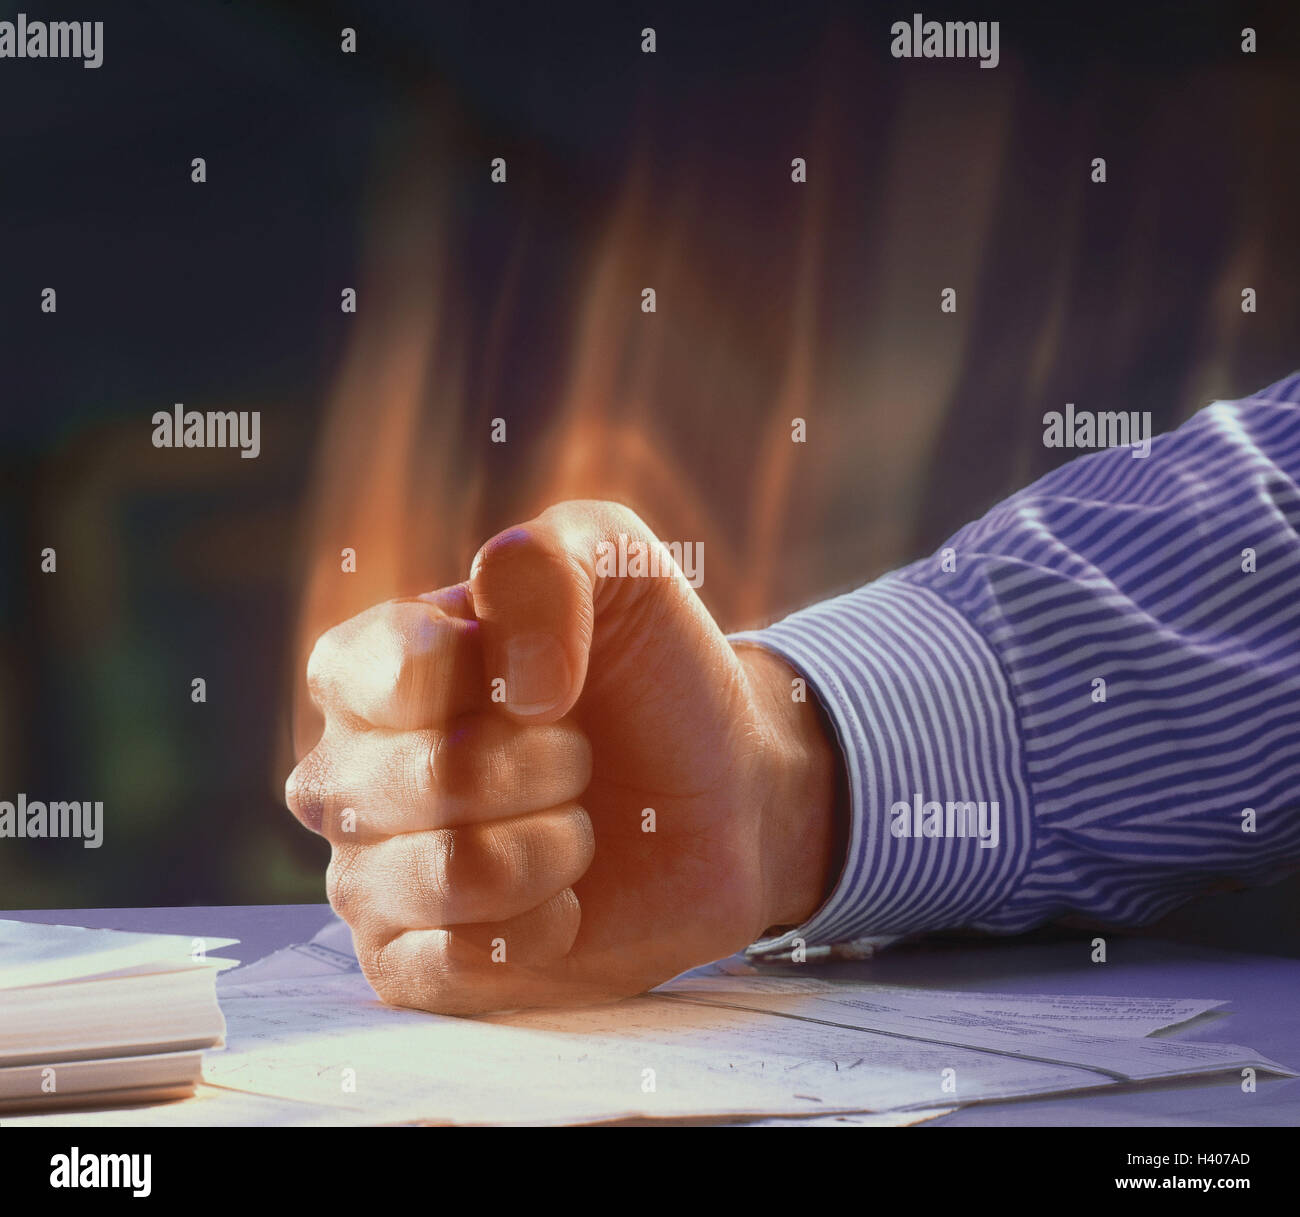 Man, detail, arm, table, fist, hit, [M], fury, rage, furiously, angrily, annoys, annoyance, fit rage, outburst rage, Stock Photo